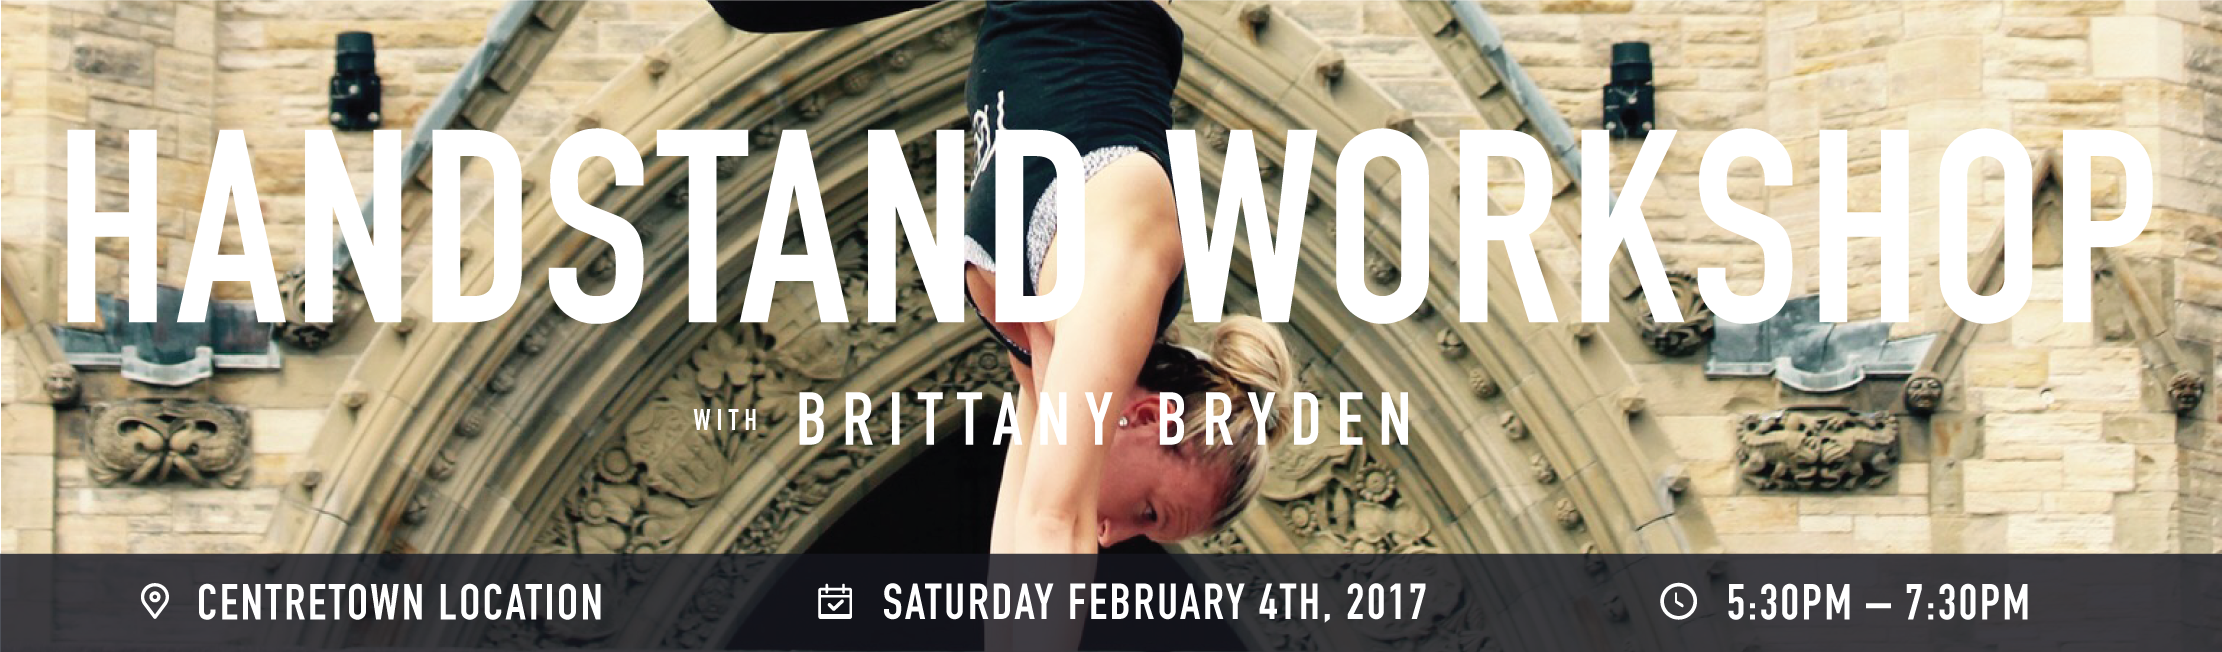 Handstand workshop banner  1